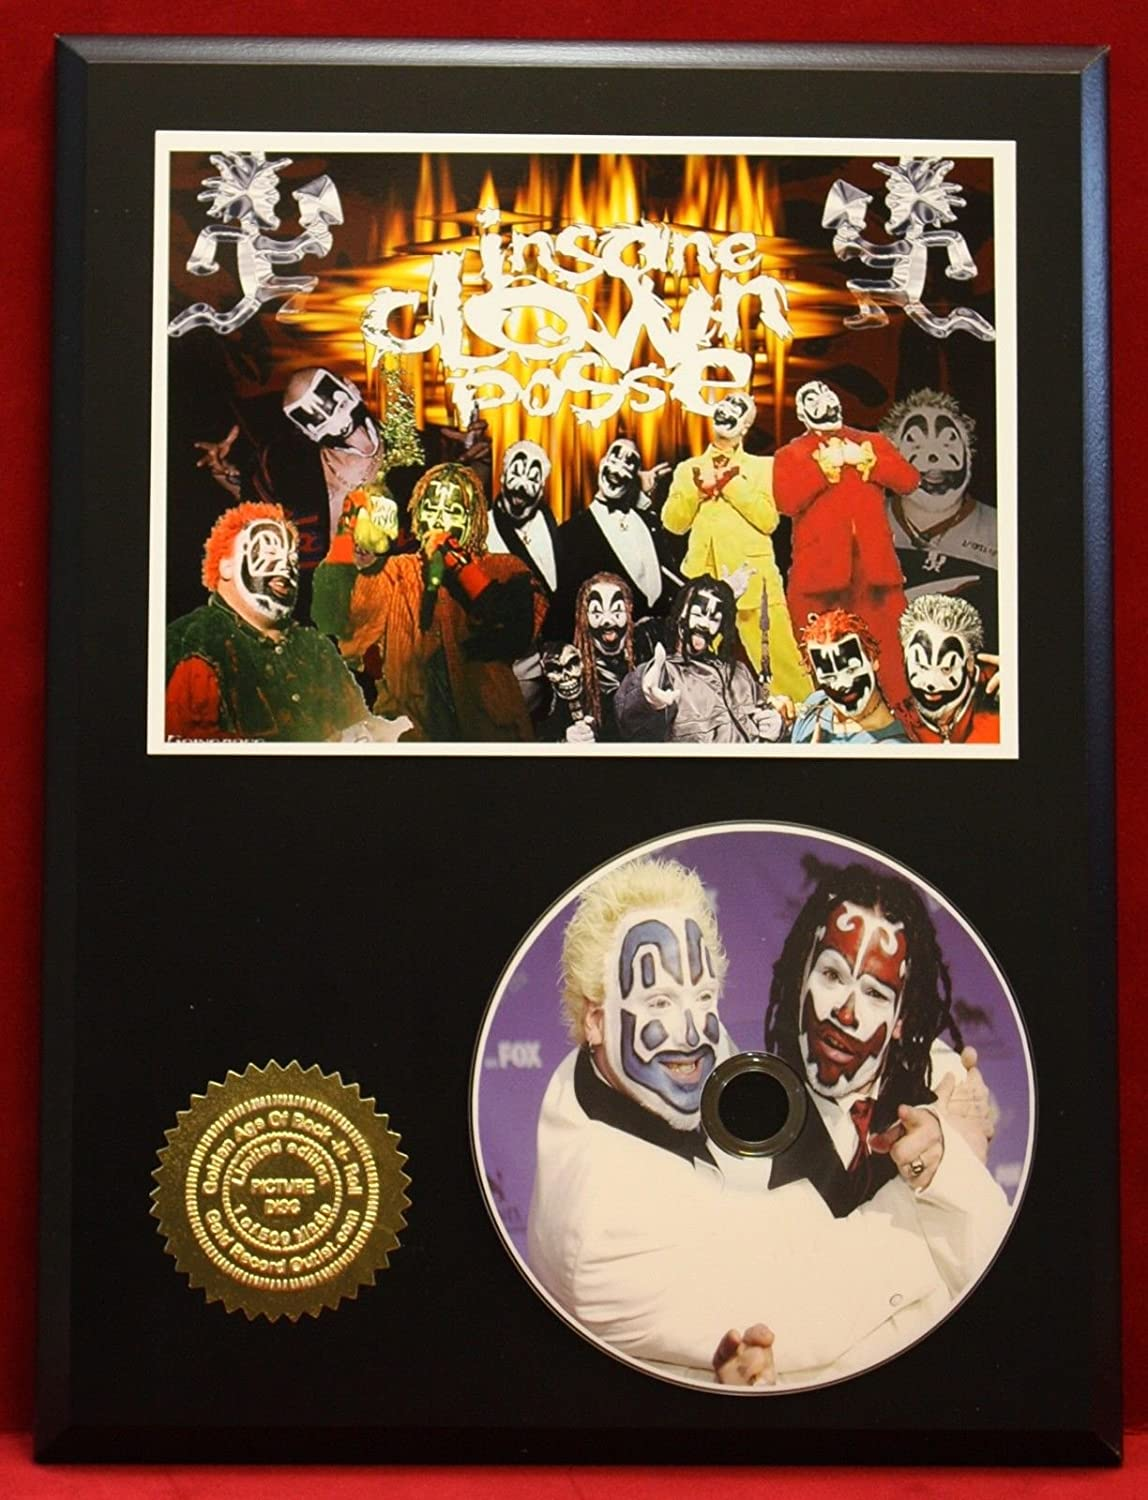 Insane Clown Posse Limited Edition Picture Cd Collectible Rare Gift Wall Art